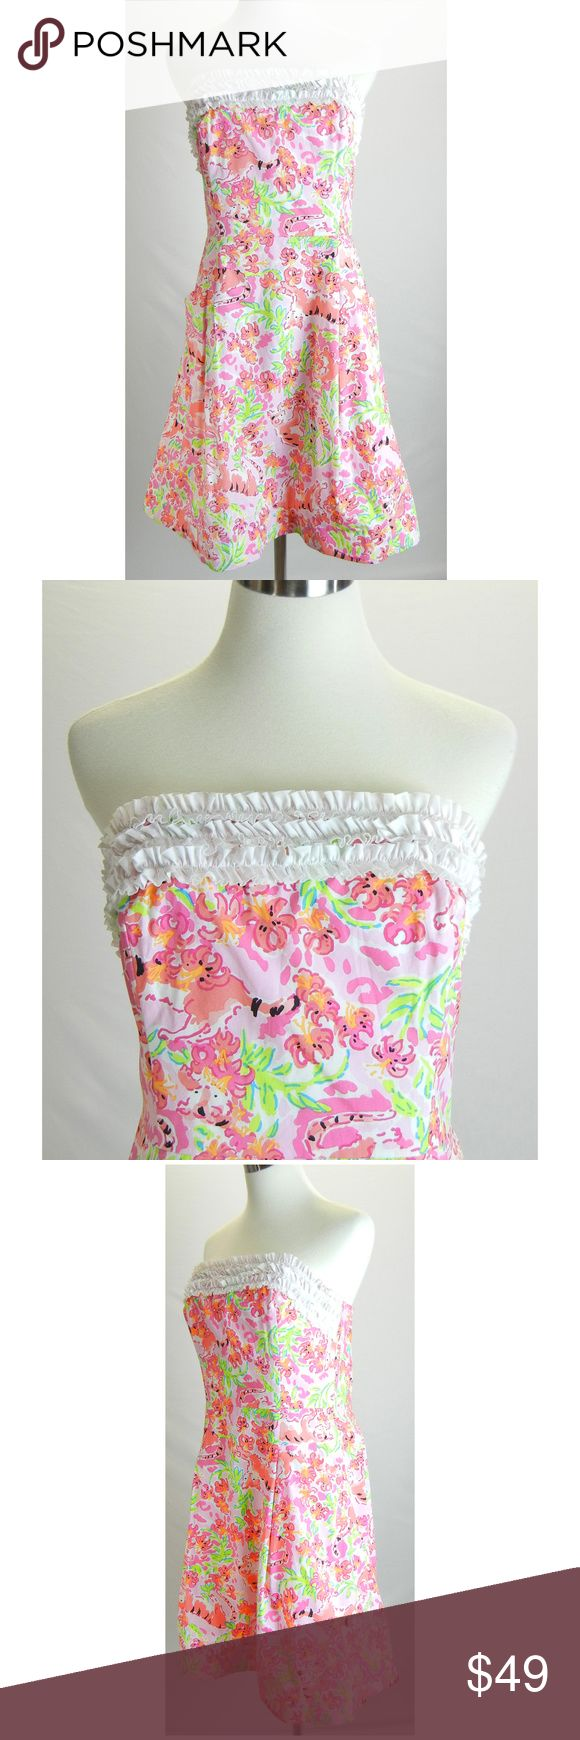 """LILLY PULITZER Dress Empire Flamingo Strapless dress from Lilly Pulitzer  Pink, white, green Flamingo print Ruffles across the chest Boning & fitted bodice Strapless Empire waist, a-line Pleated skirt 2 front pockets Lined Hidden back zipper Above the knee 100% cotton Hand wash, line dry Tagged size:  10 Excellent condition, no flaws  Please check measurements to determine fit All measurements are given in full Chest  34"""" Waist  32""""  Hips  42""""  Length  29.5"""" Lilly Pulitzer Dresses Strapless"""